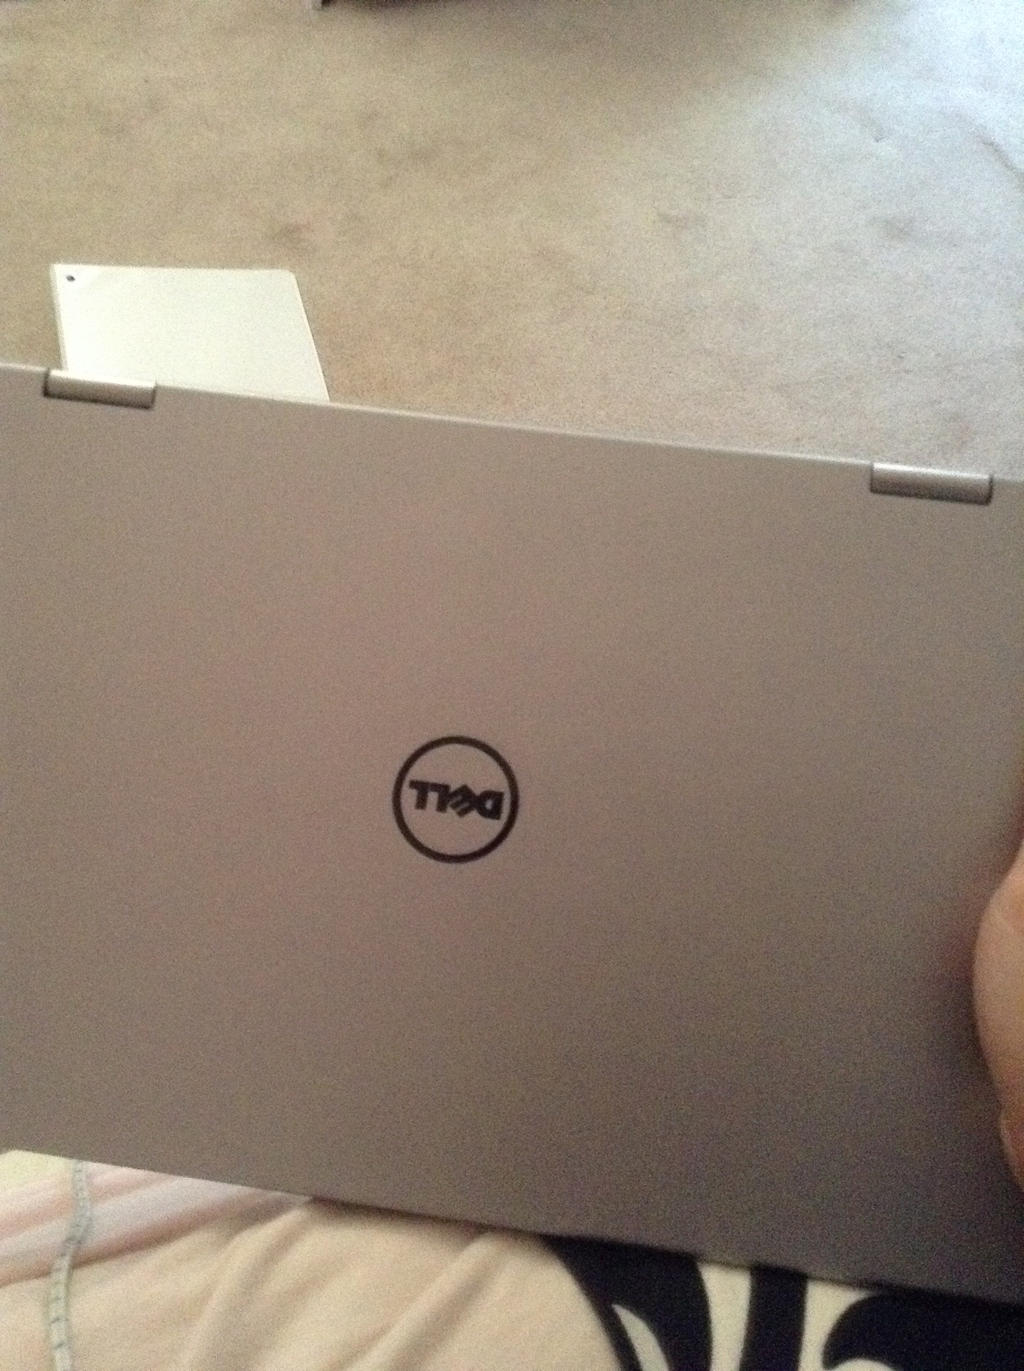 New Laptop Came in! by BlueBlur515